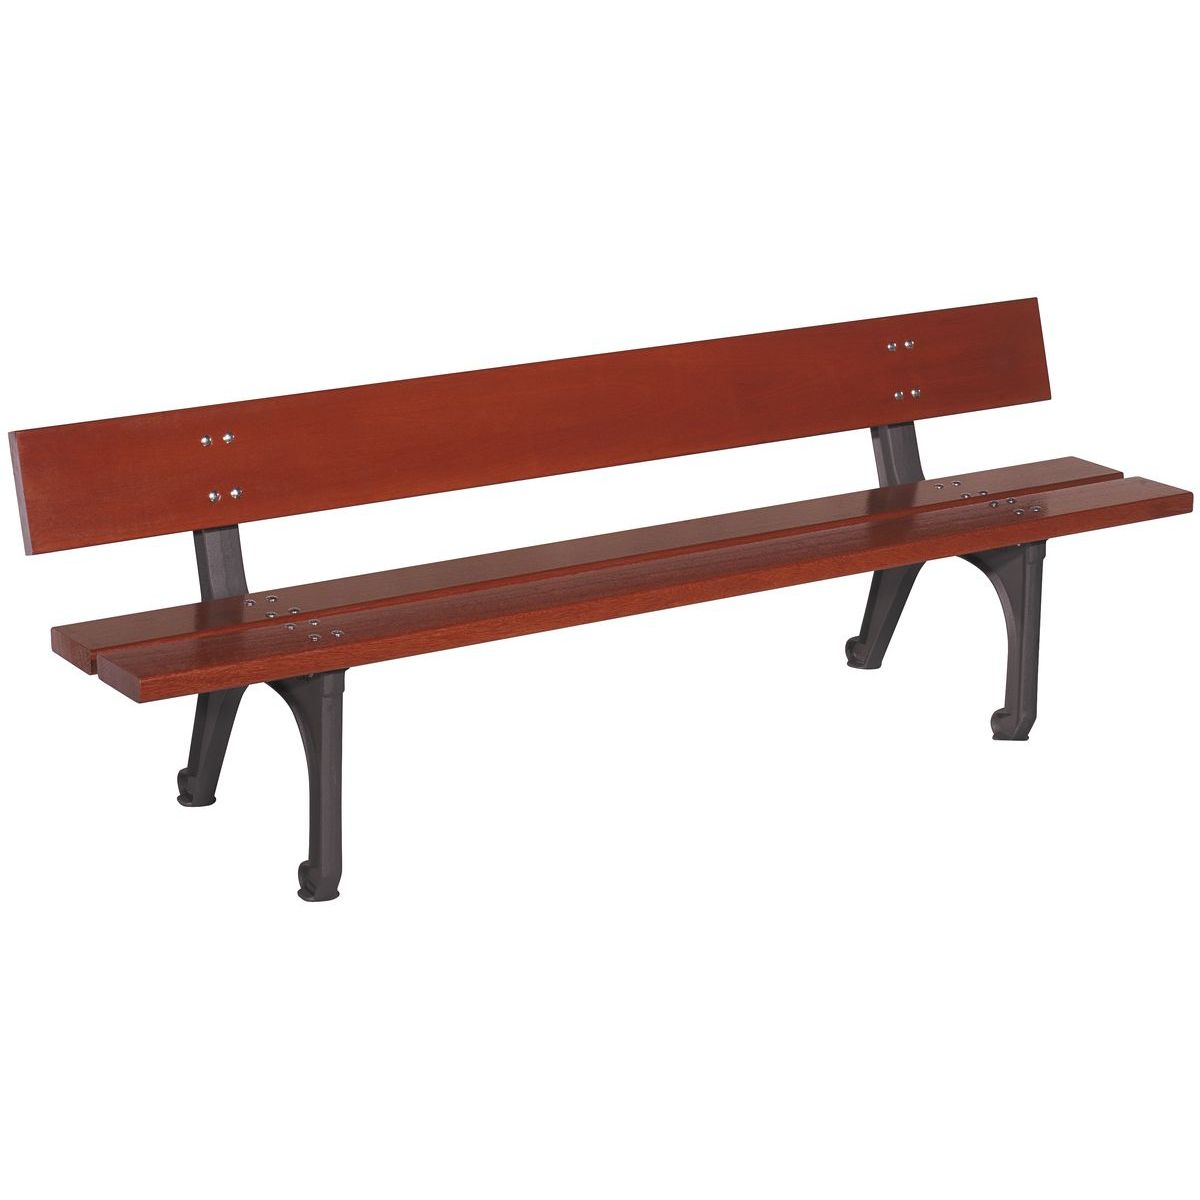 Bilbao Bench C-104 zoomed